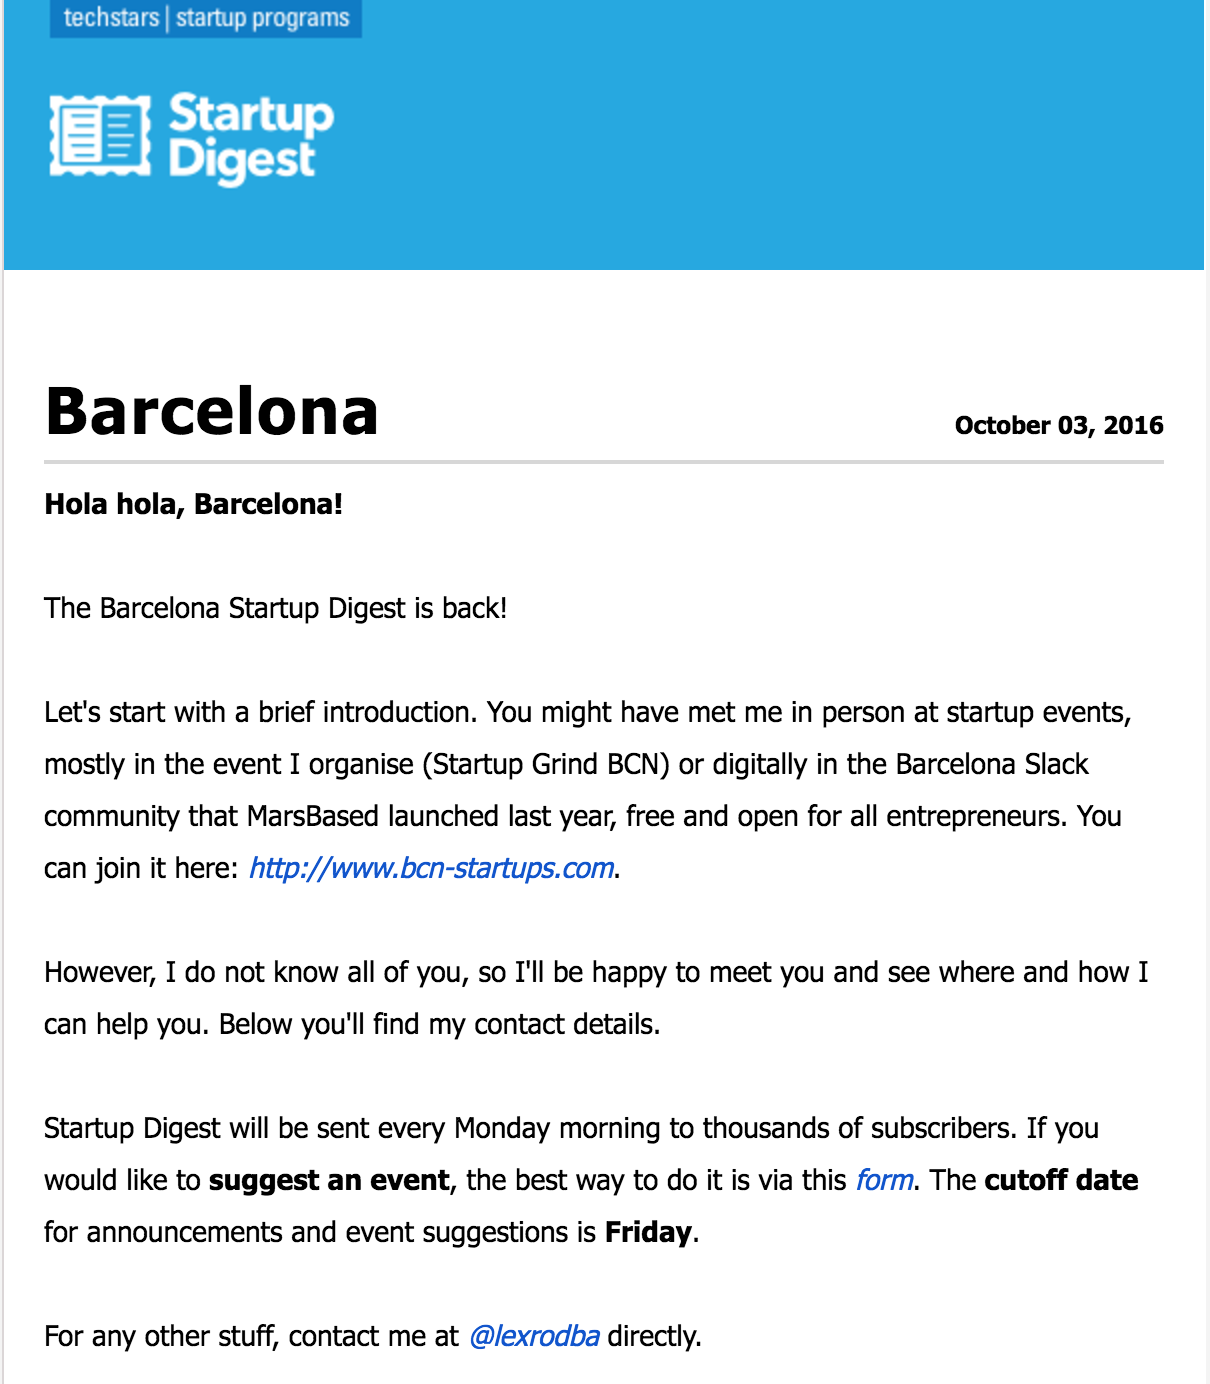 Startup Digest Barcelona first email